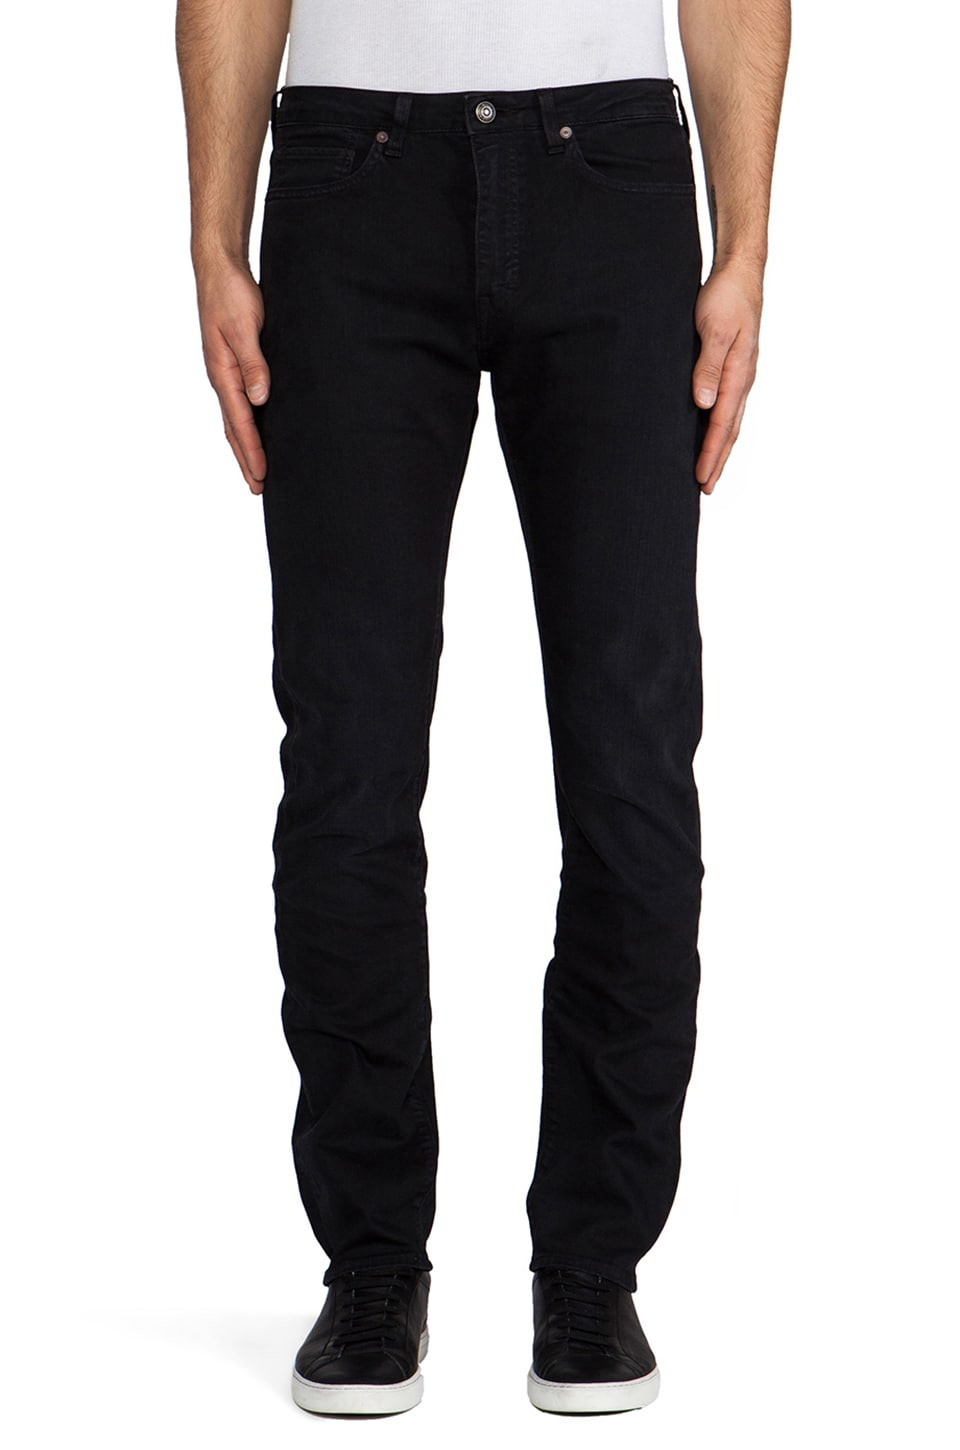 LEVI'S: Made & Crafted Tack Slim in Black Lagoon